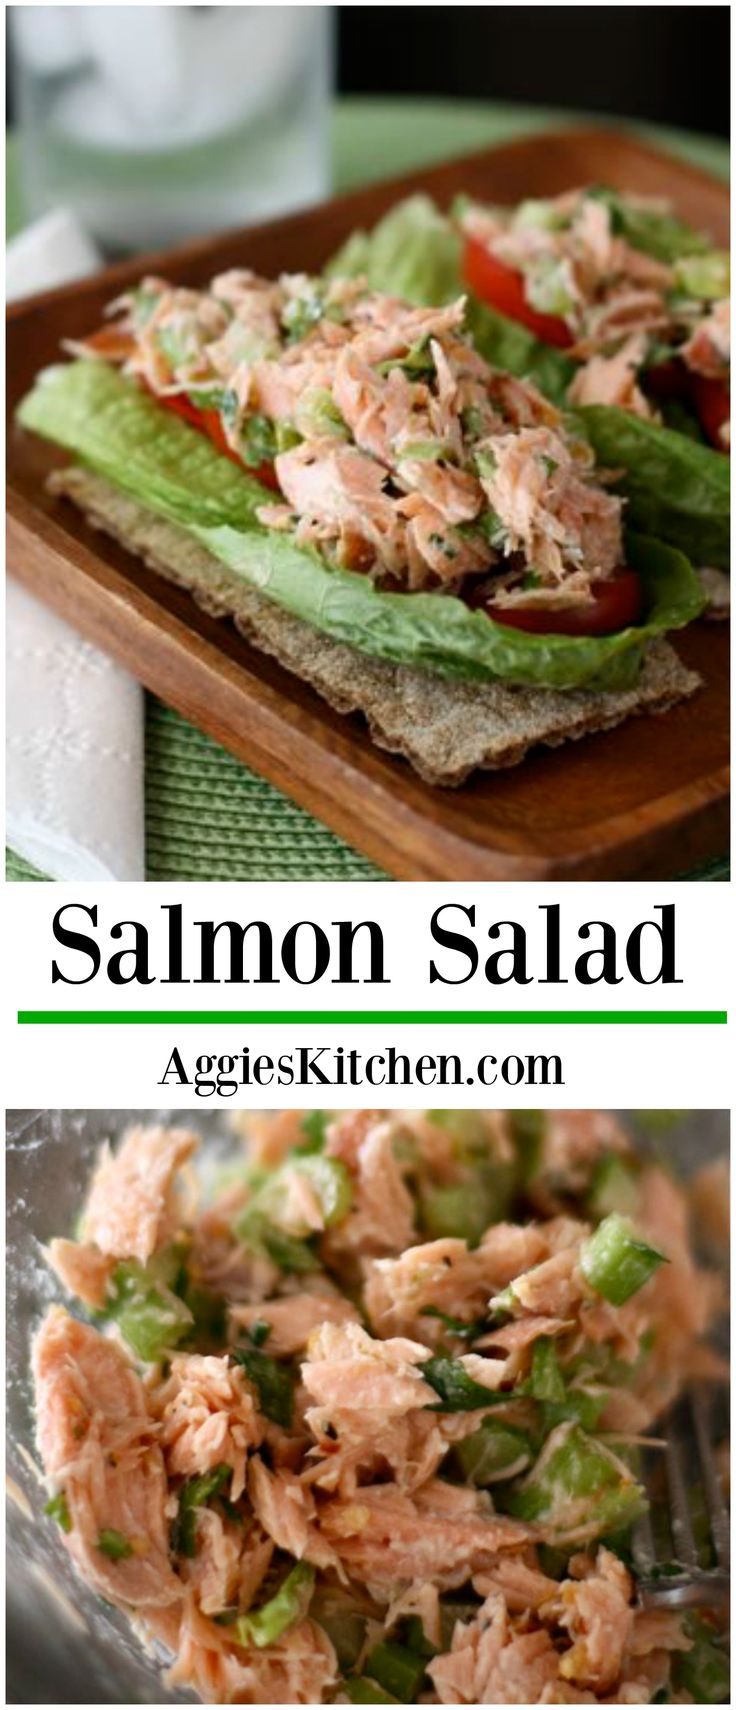 This simple Salmon Salad is a great switch up from your tuna sandwich. Bake up some extra salmon at dinnertime and use up the leftovers to create this protein packed salmon salad for lunch the next day! Recipe via aggieskitchen.com